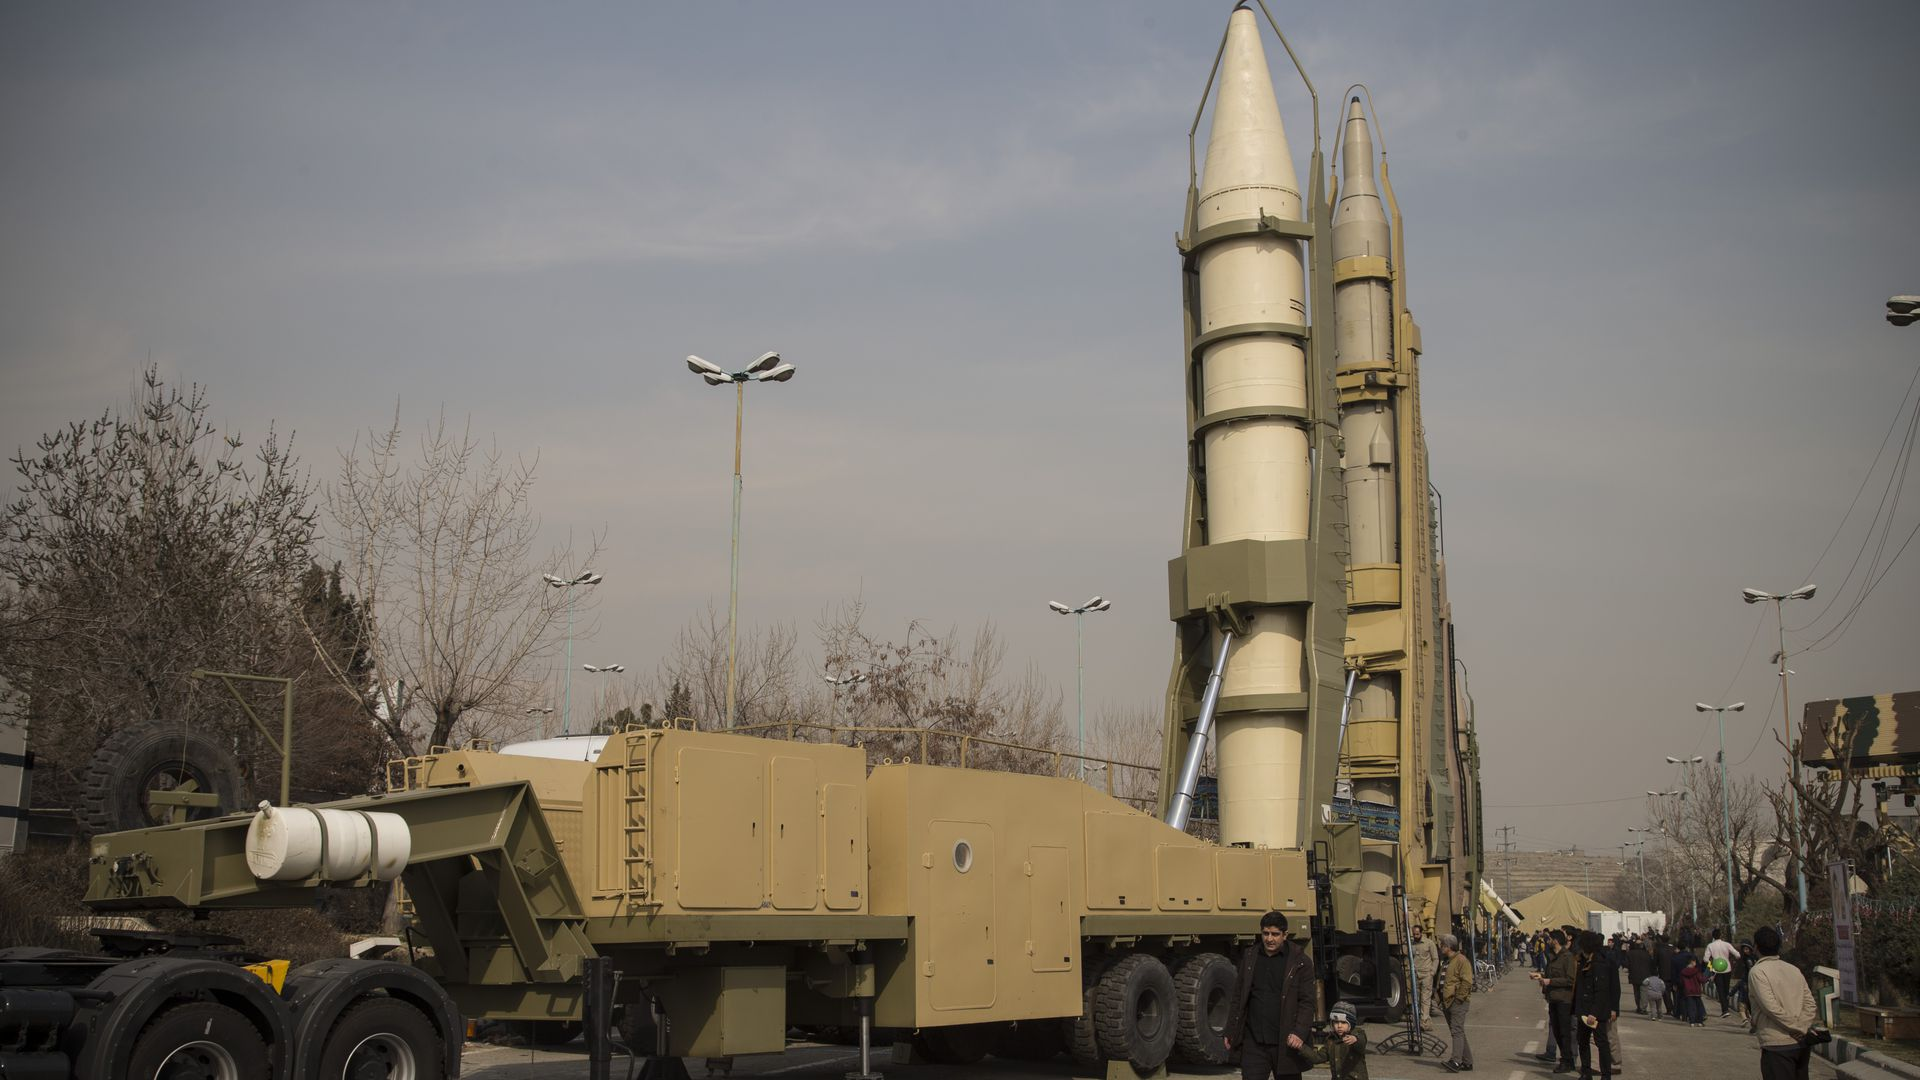 Iranian missiles on display at a military exhibition